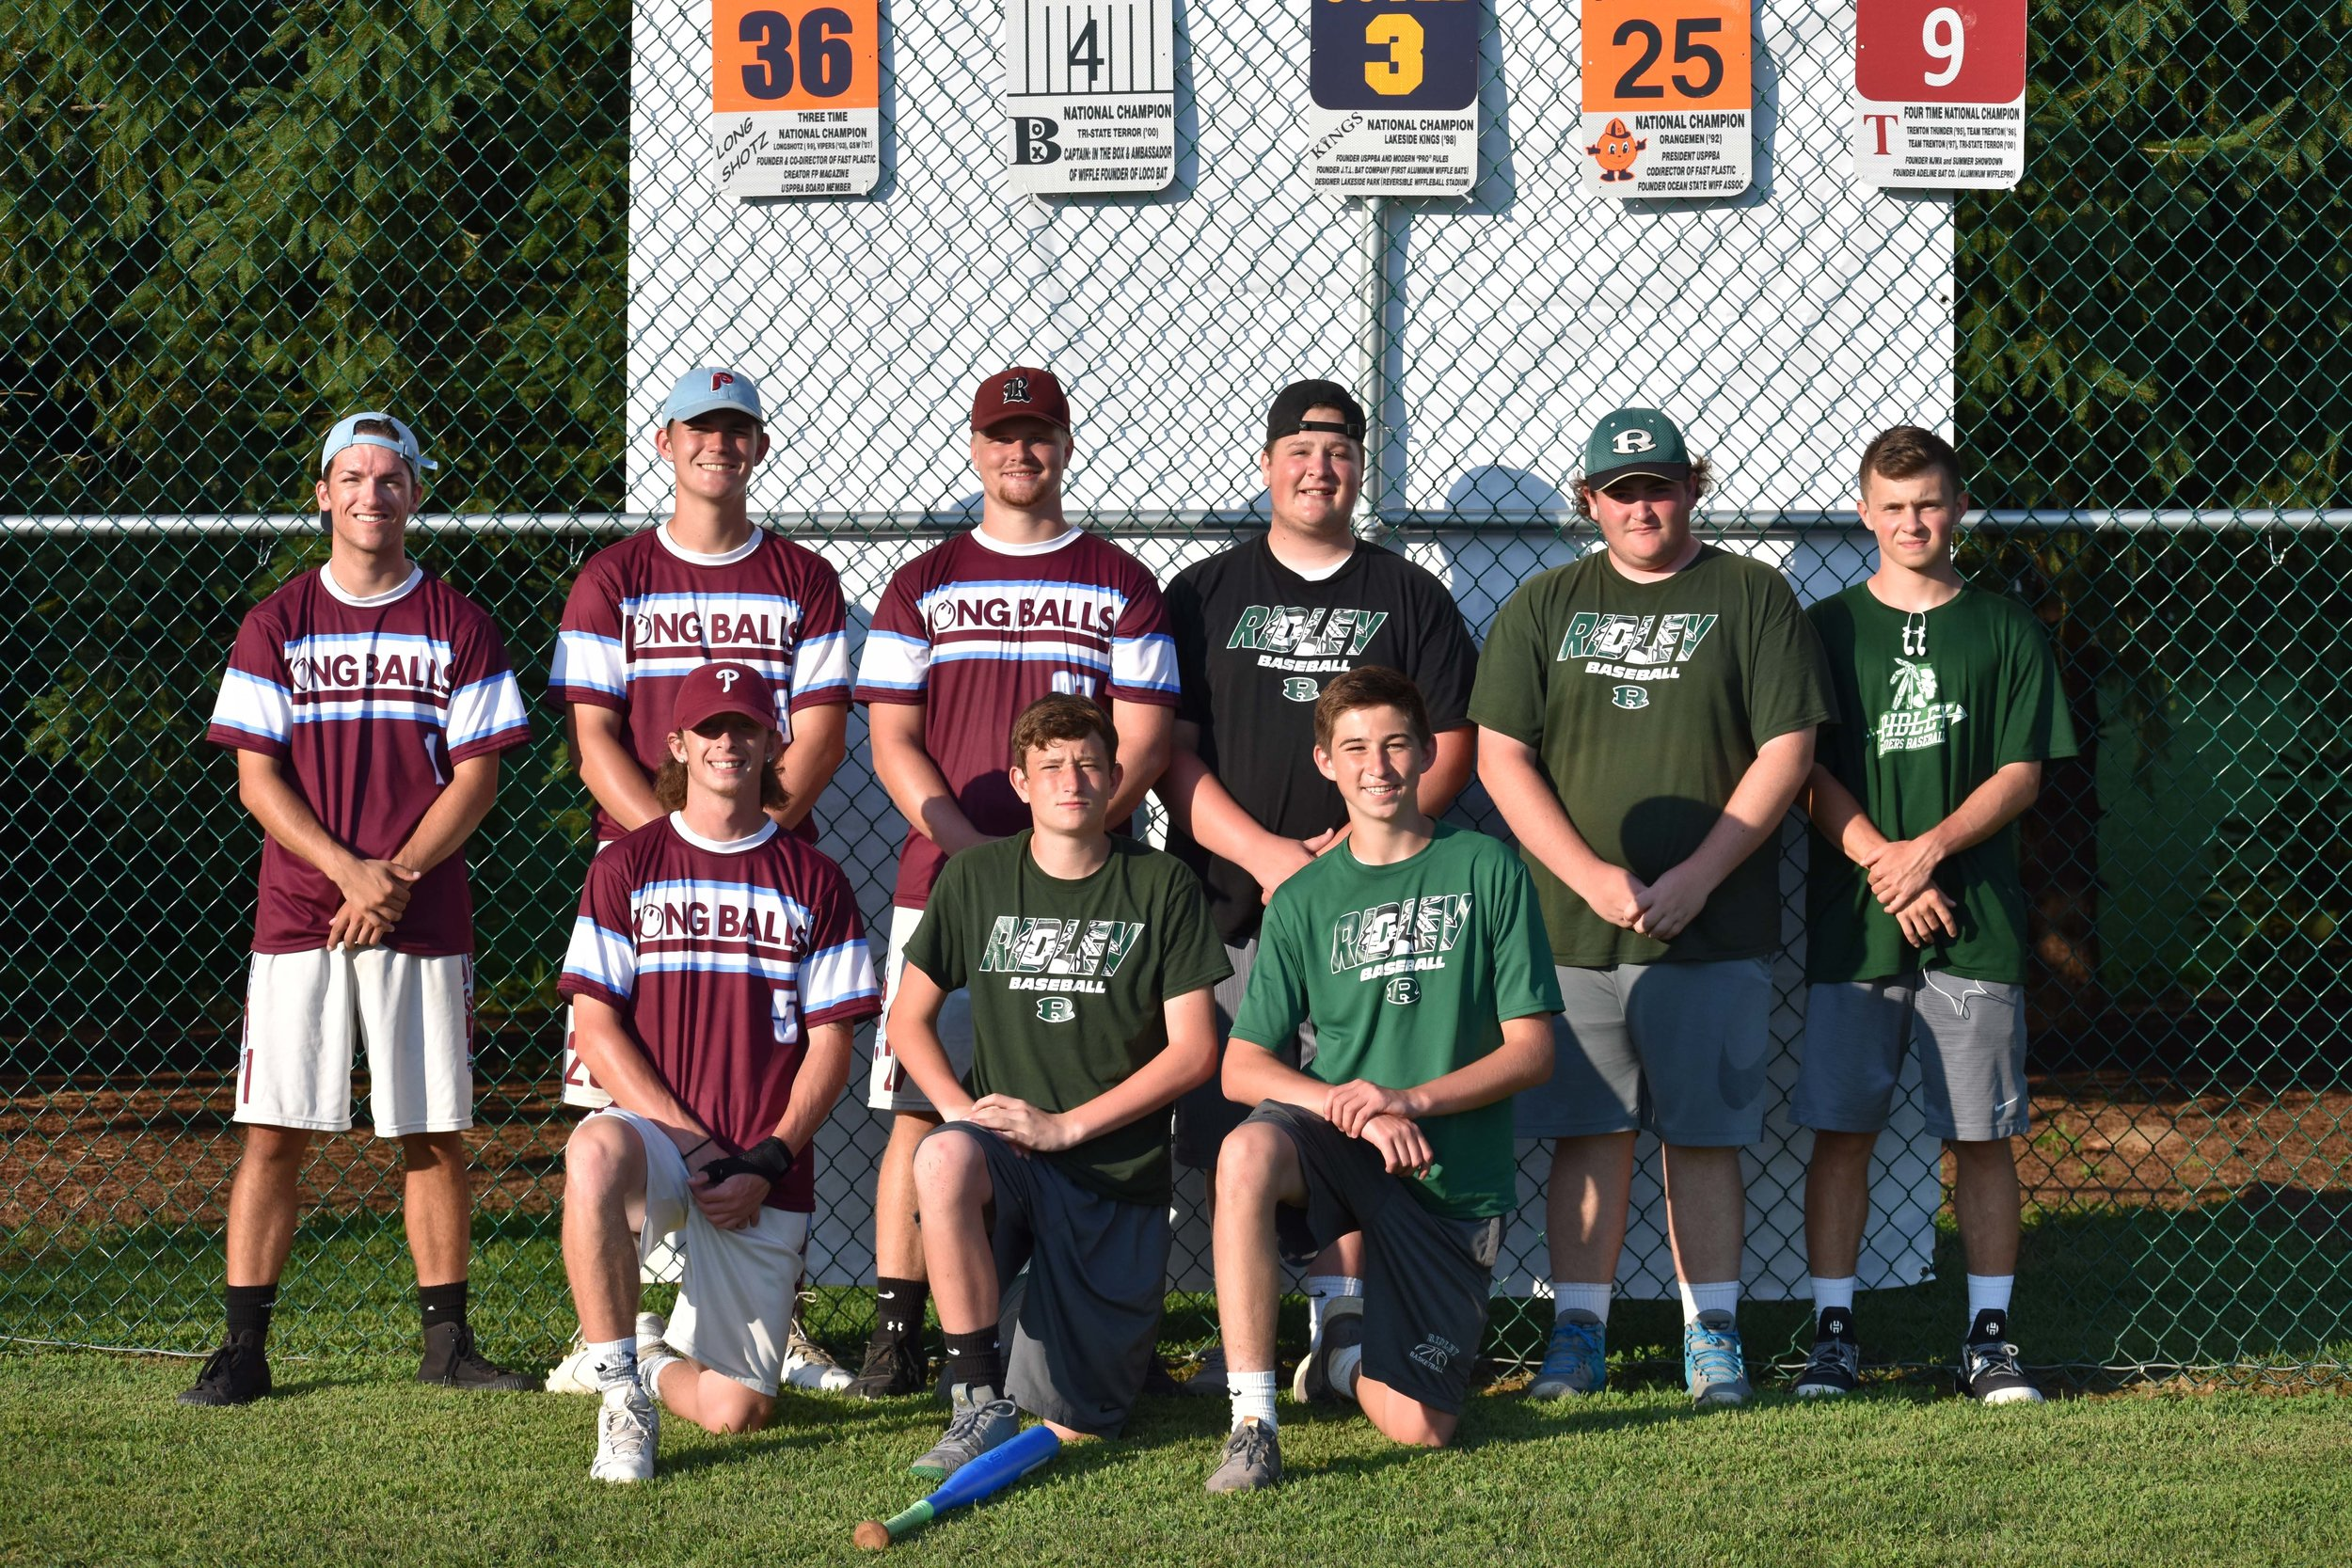 The Longballs and Shortballs - both out of the Ridley Park Wiffleball League - pose for a picture together after the tournament. Combined, the teams allowed just five runs in 46 innings on the day.